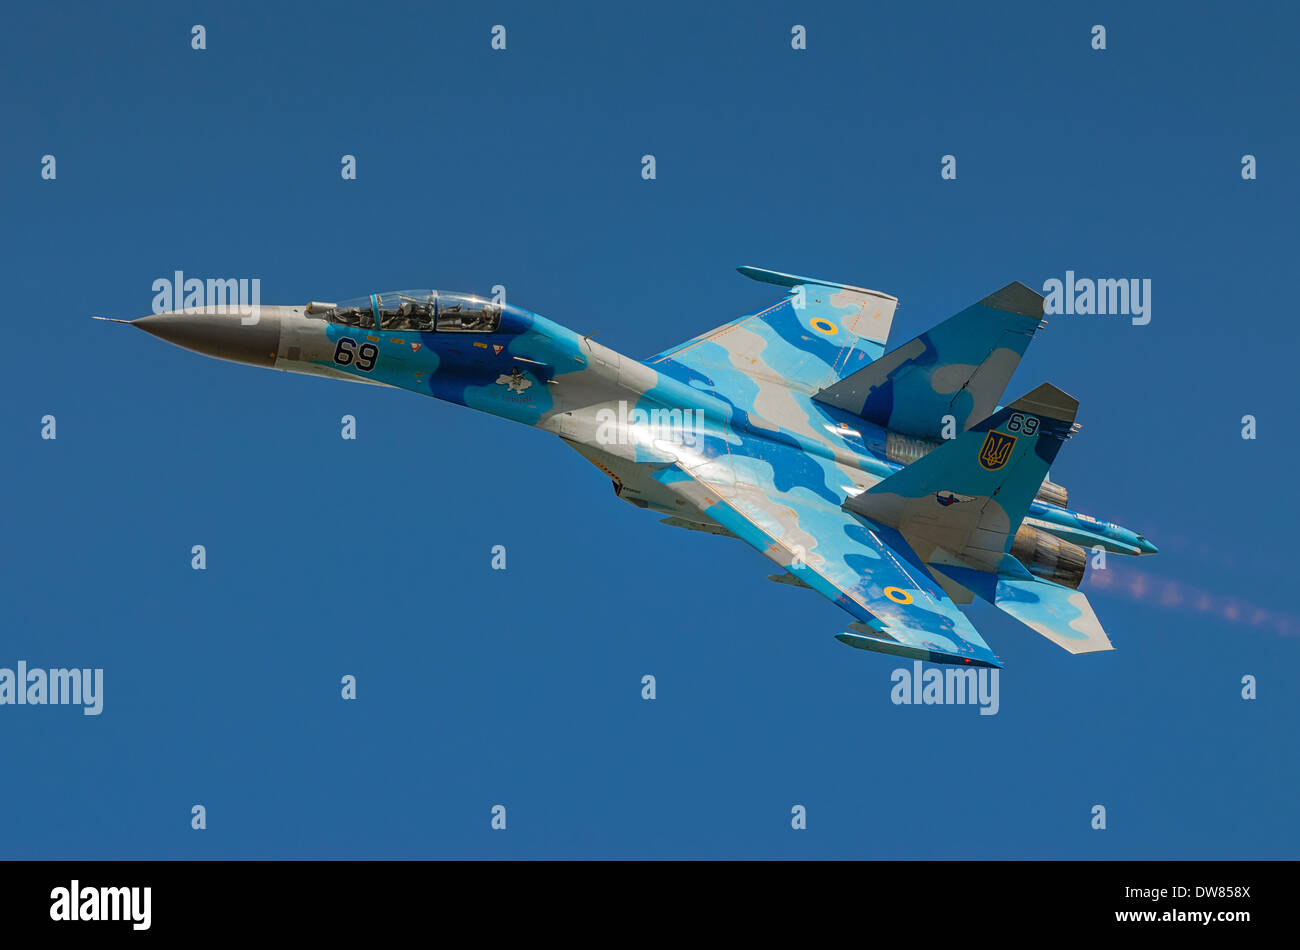 Ukrainian SU-27 display during Air Show 2013 event on August 25, 2013 in Radom, Poland - Stock Image